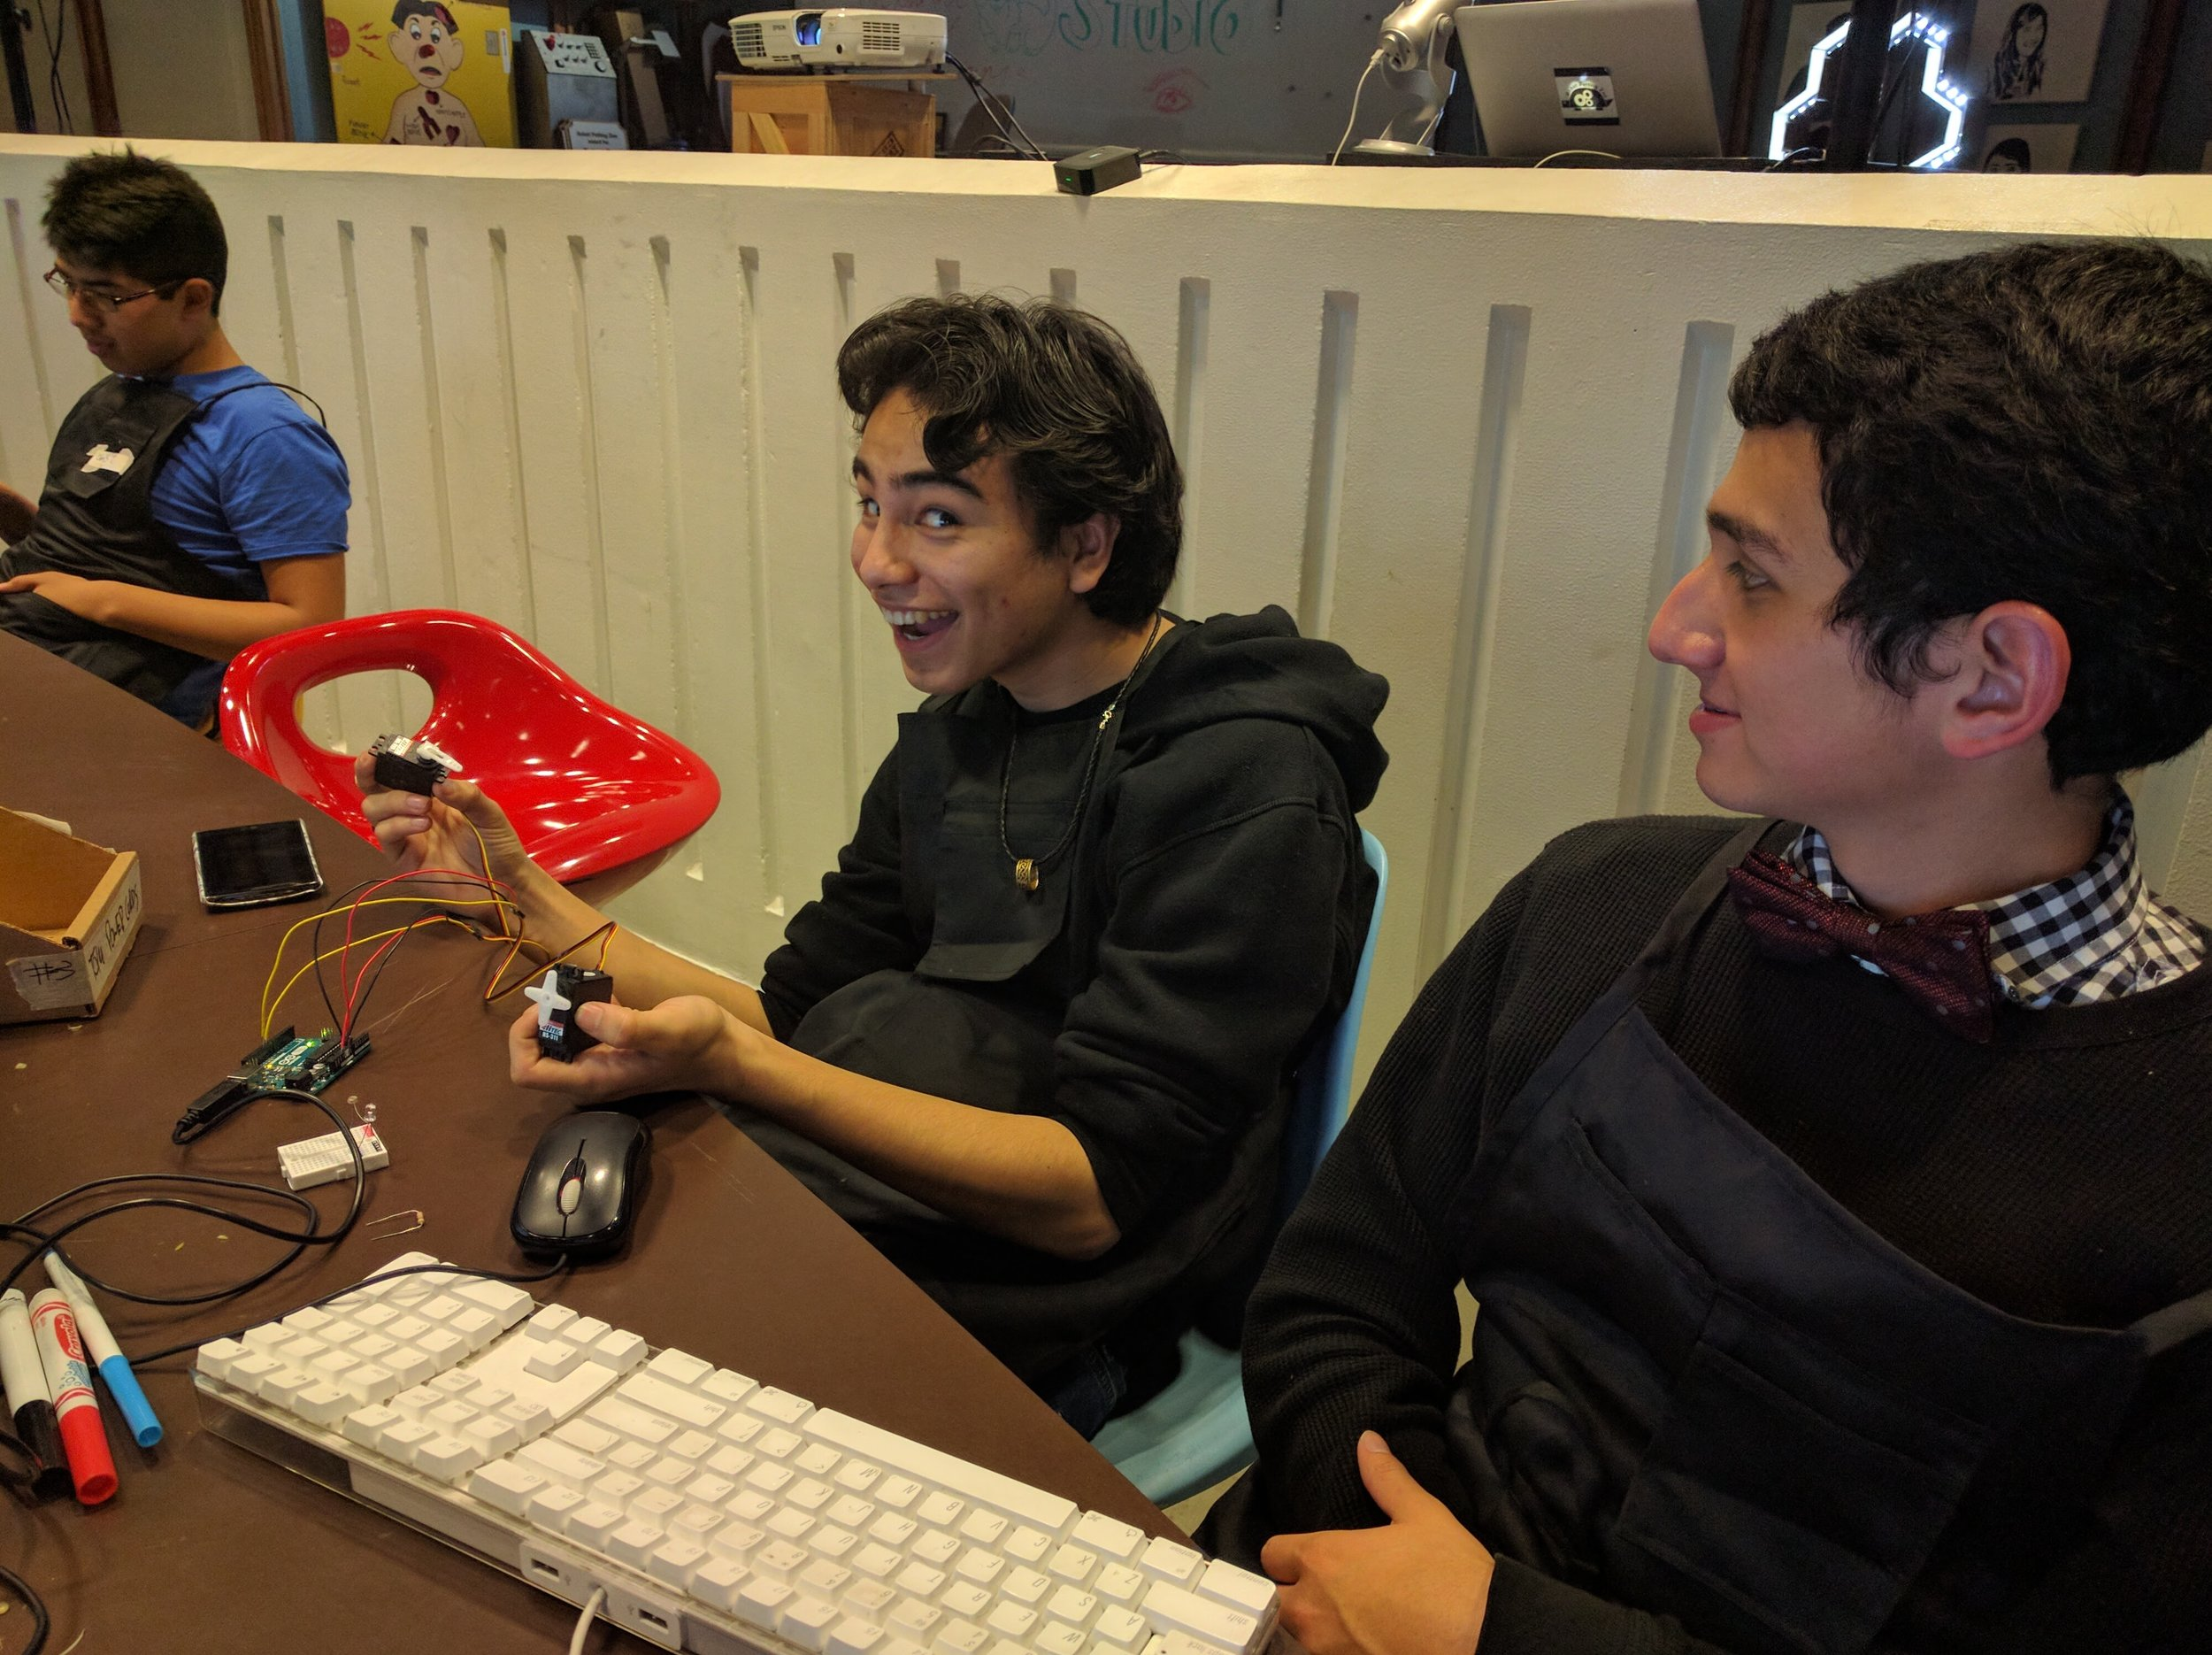 DJ and Javier troubleshooting their servos.